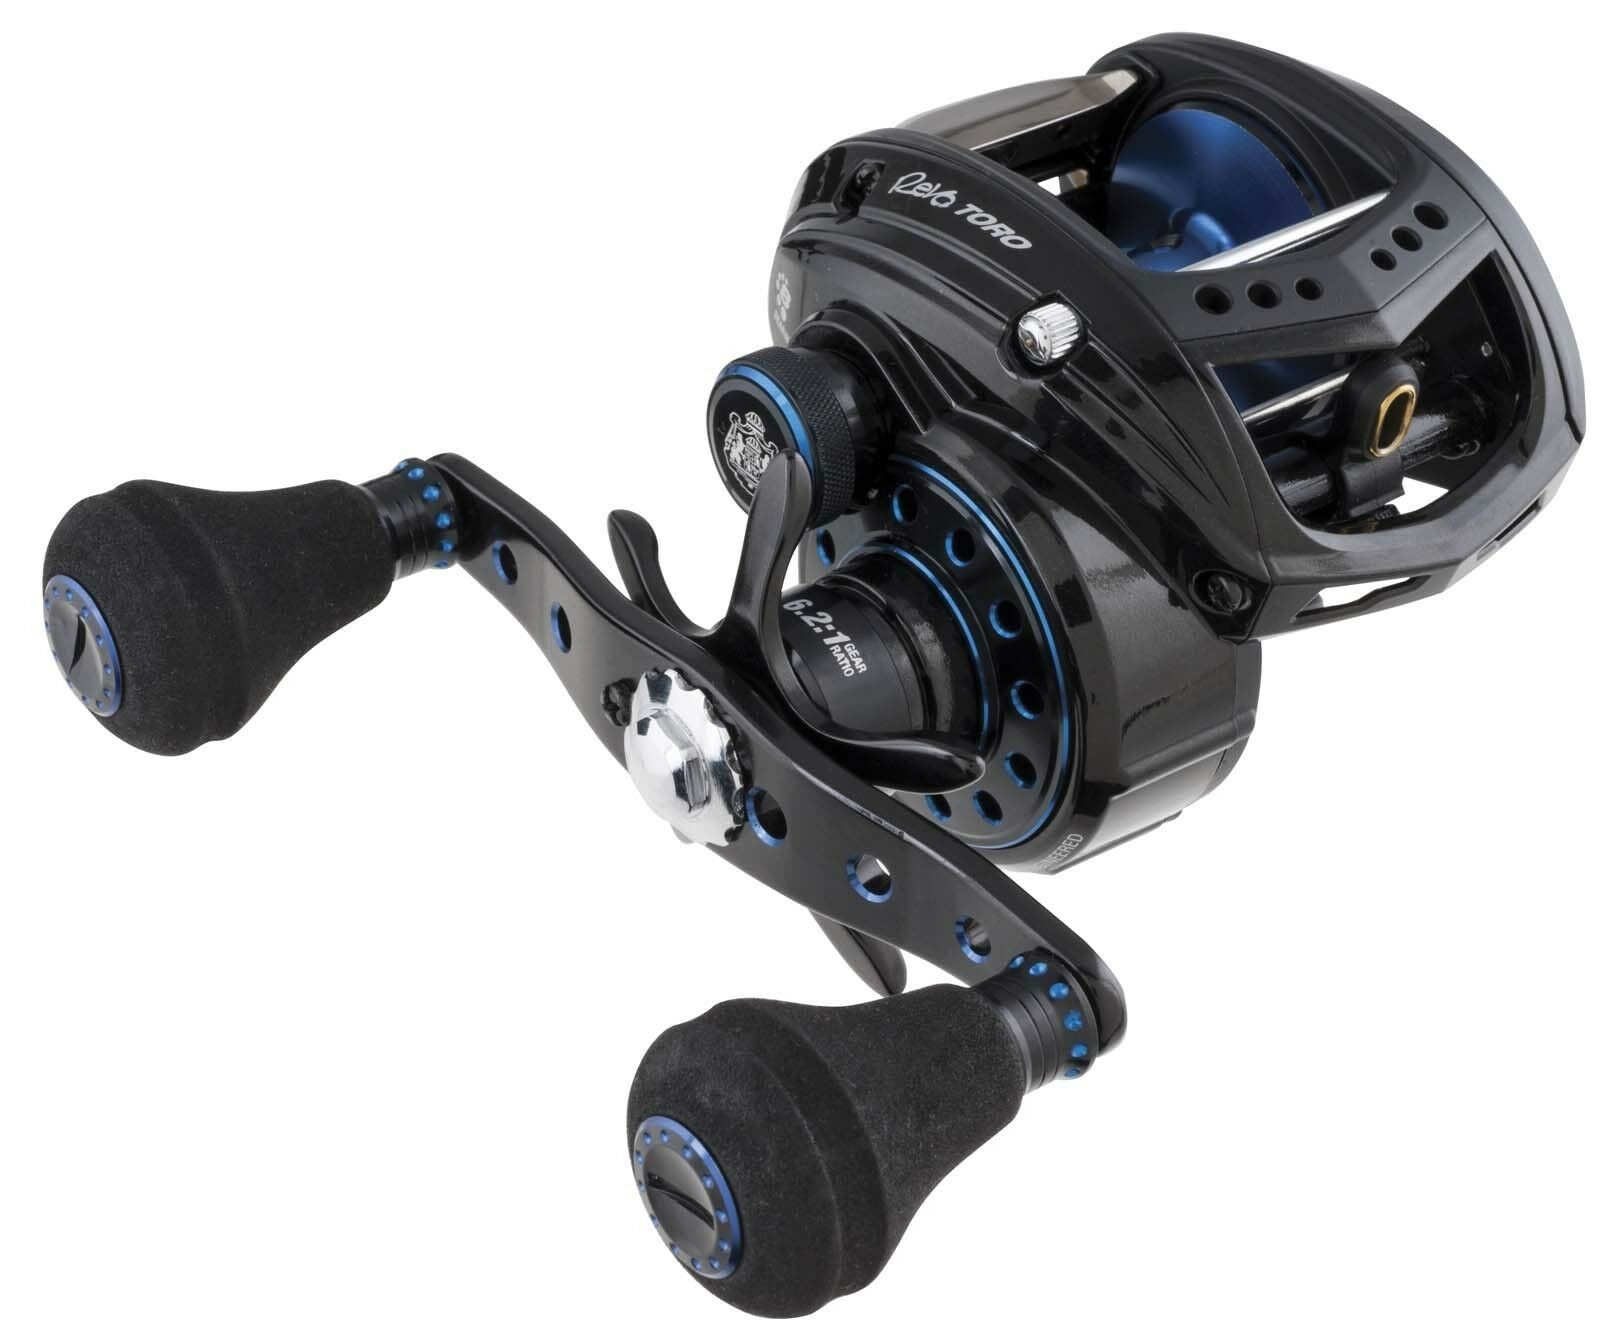 Abu  Garcia Revo Tgold 2 Beast 50 & 51 Low Profile Baitcast Fishing Reels – 2016  incredible discounts